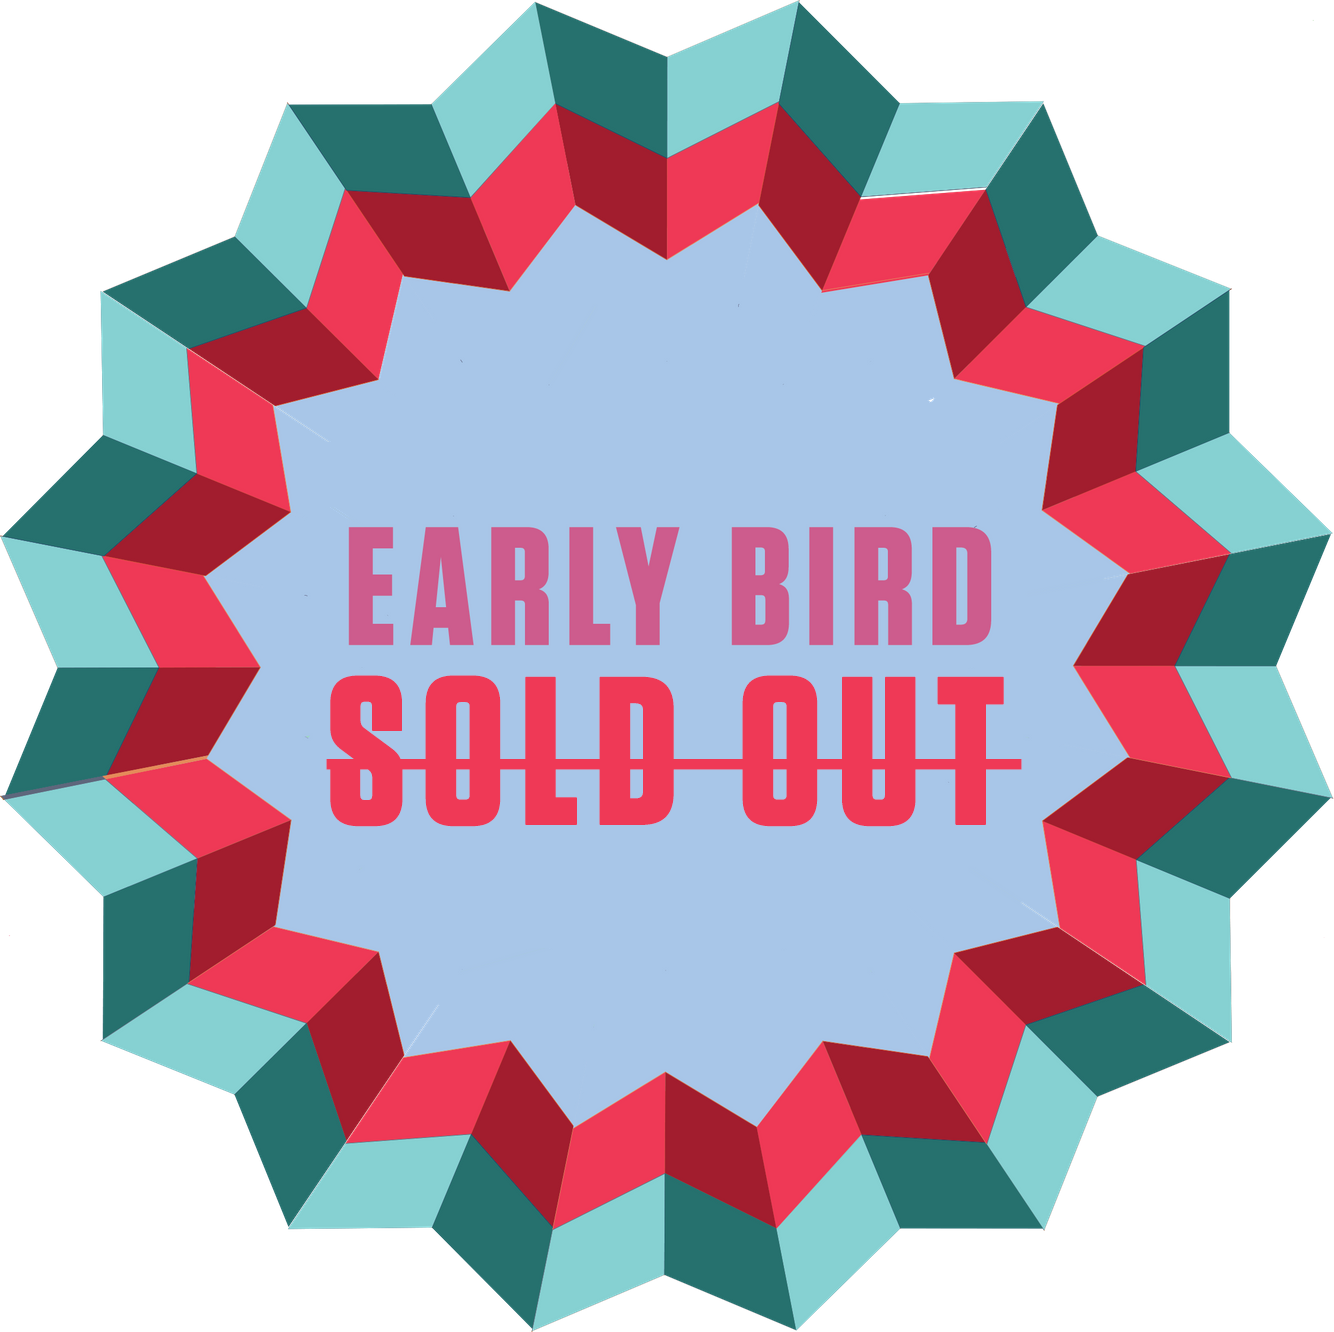 early bird soldout.png